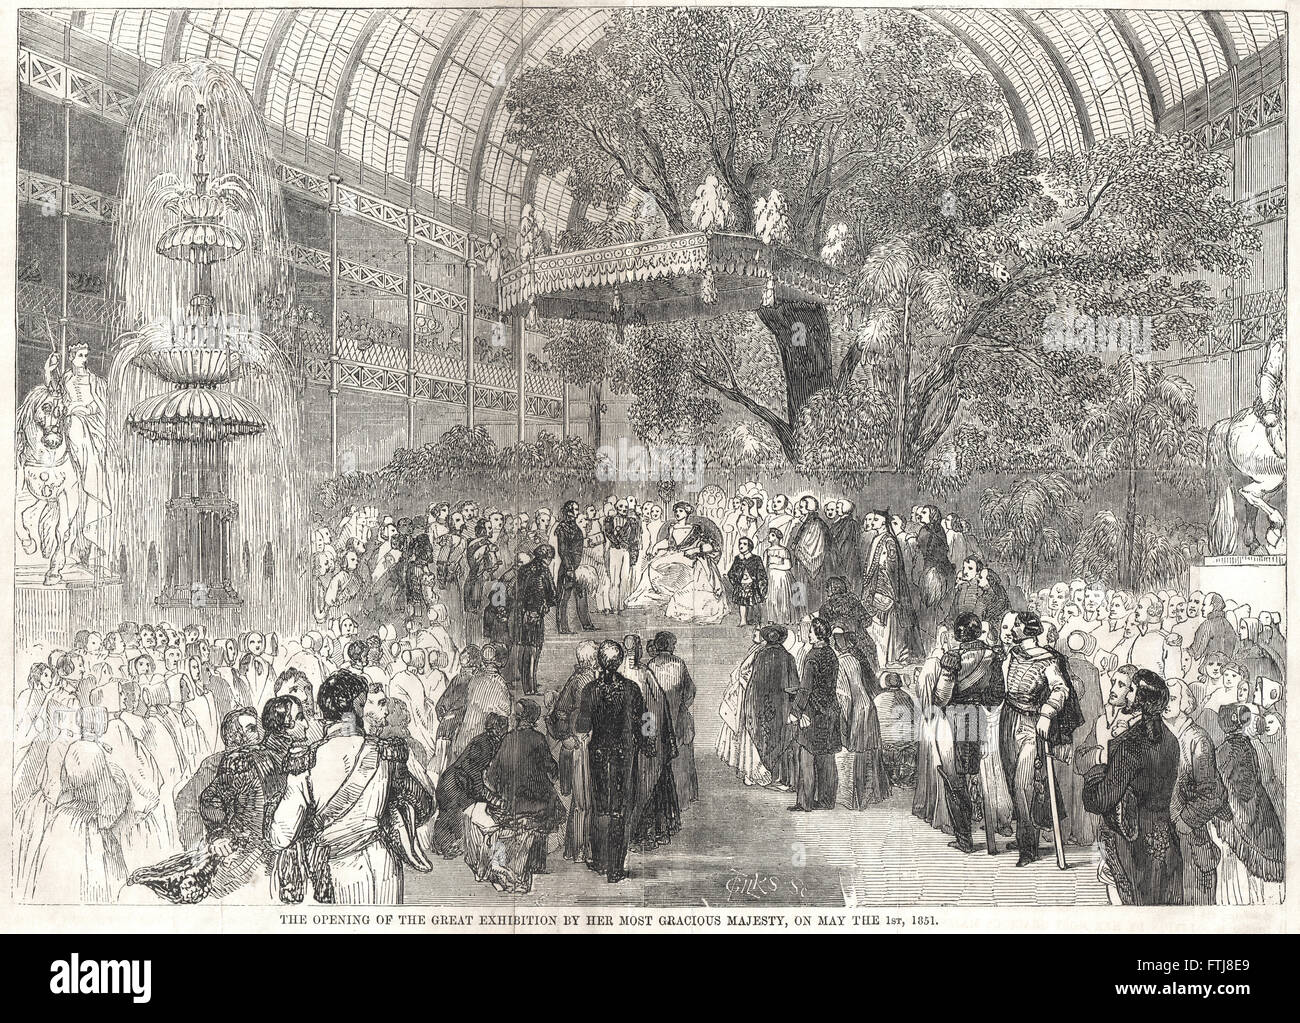 Queen Victoria Opening the Great Exhibition of 1851 - Stock Image